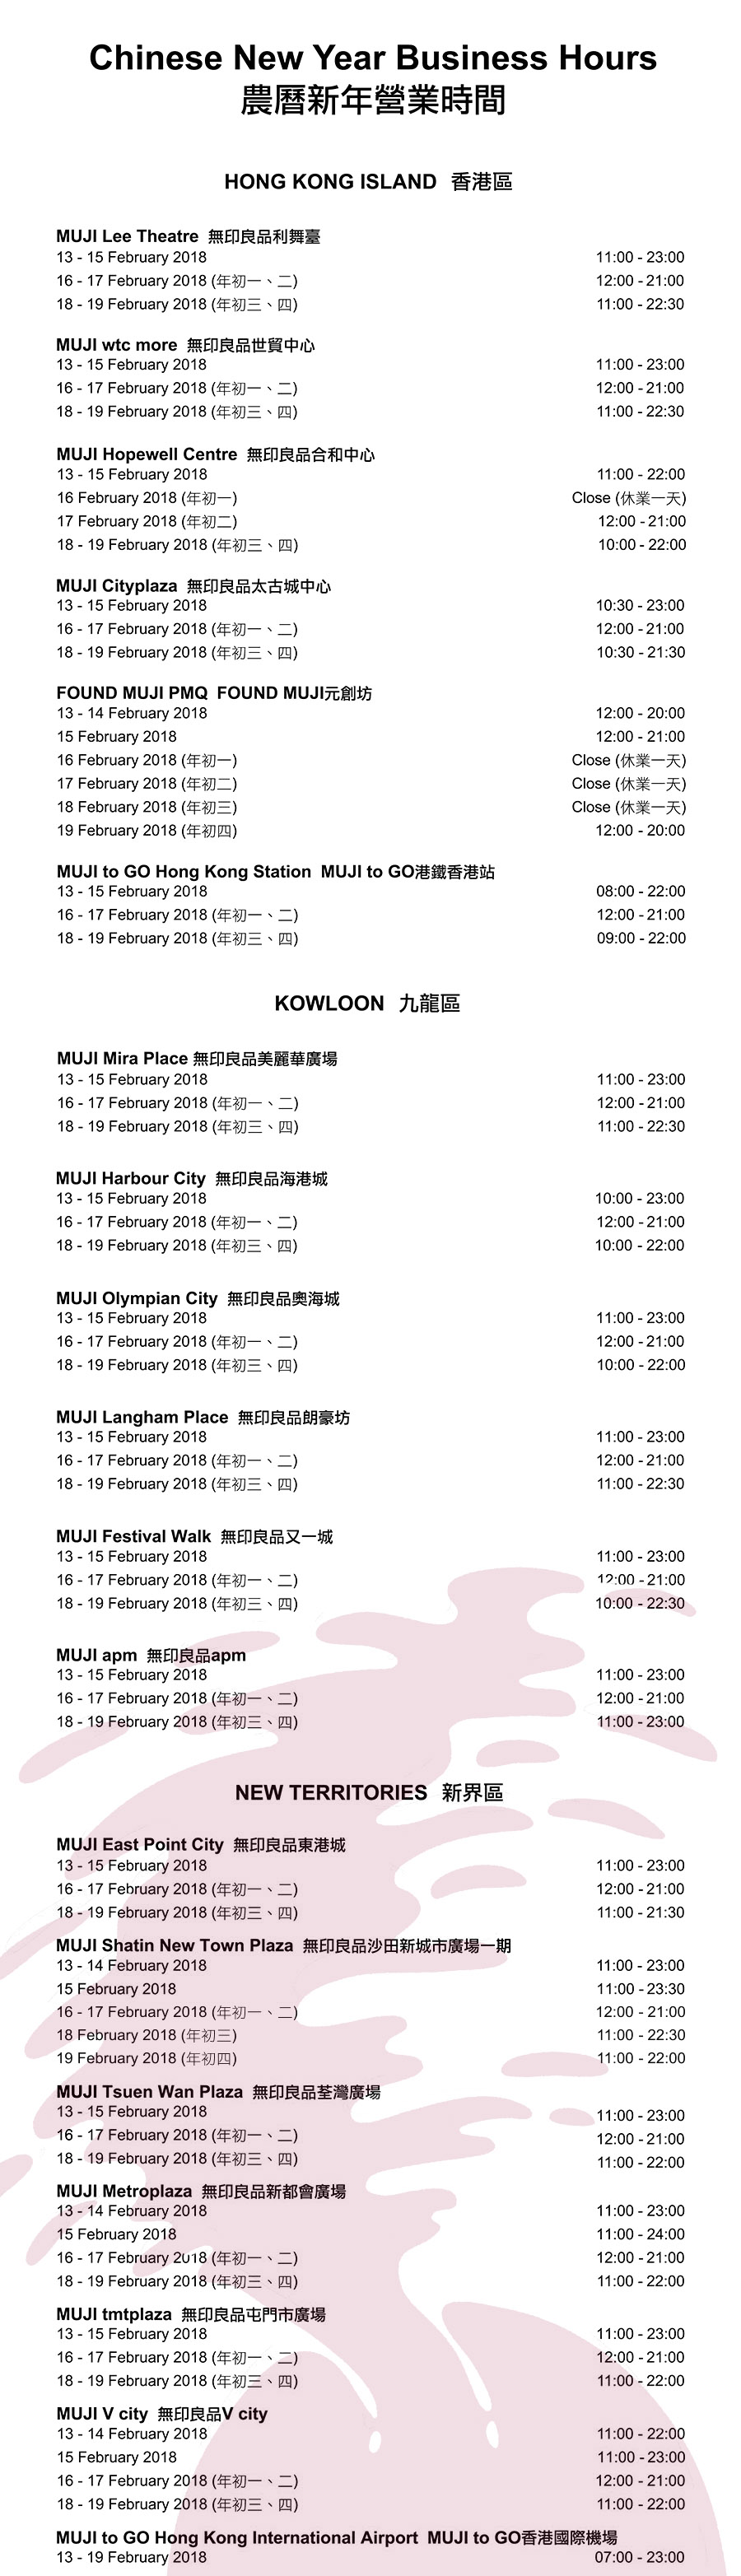 20180129_2018CNY_Business Hour Notice_All store_r2_CO